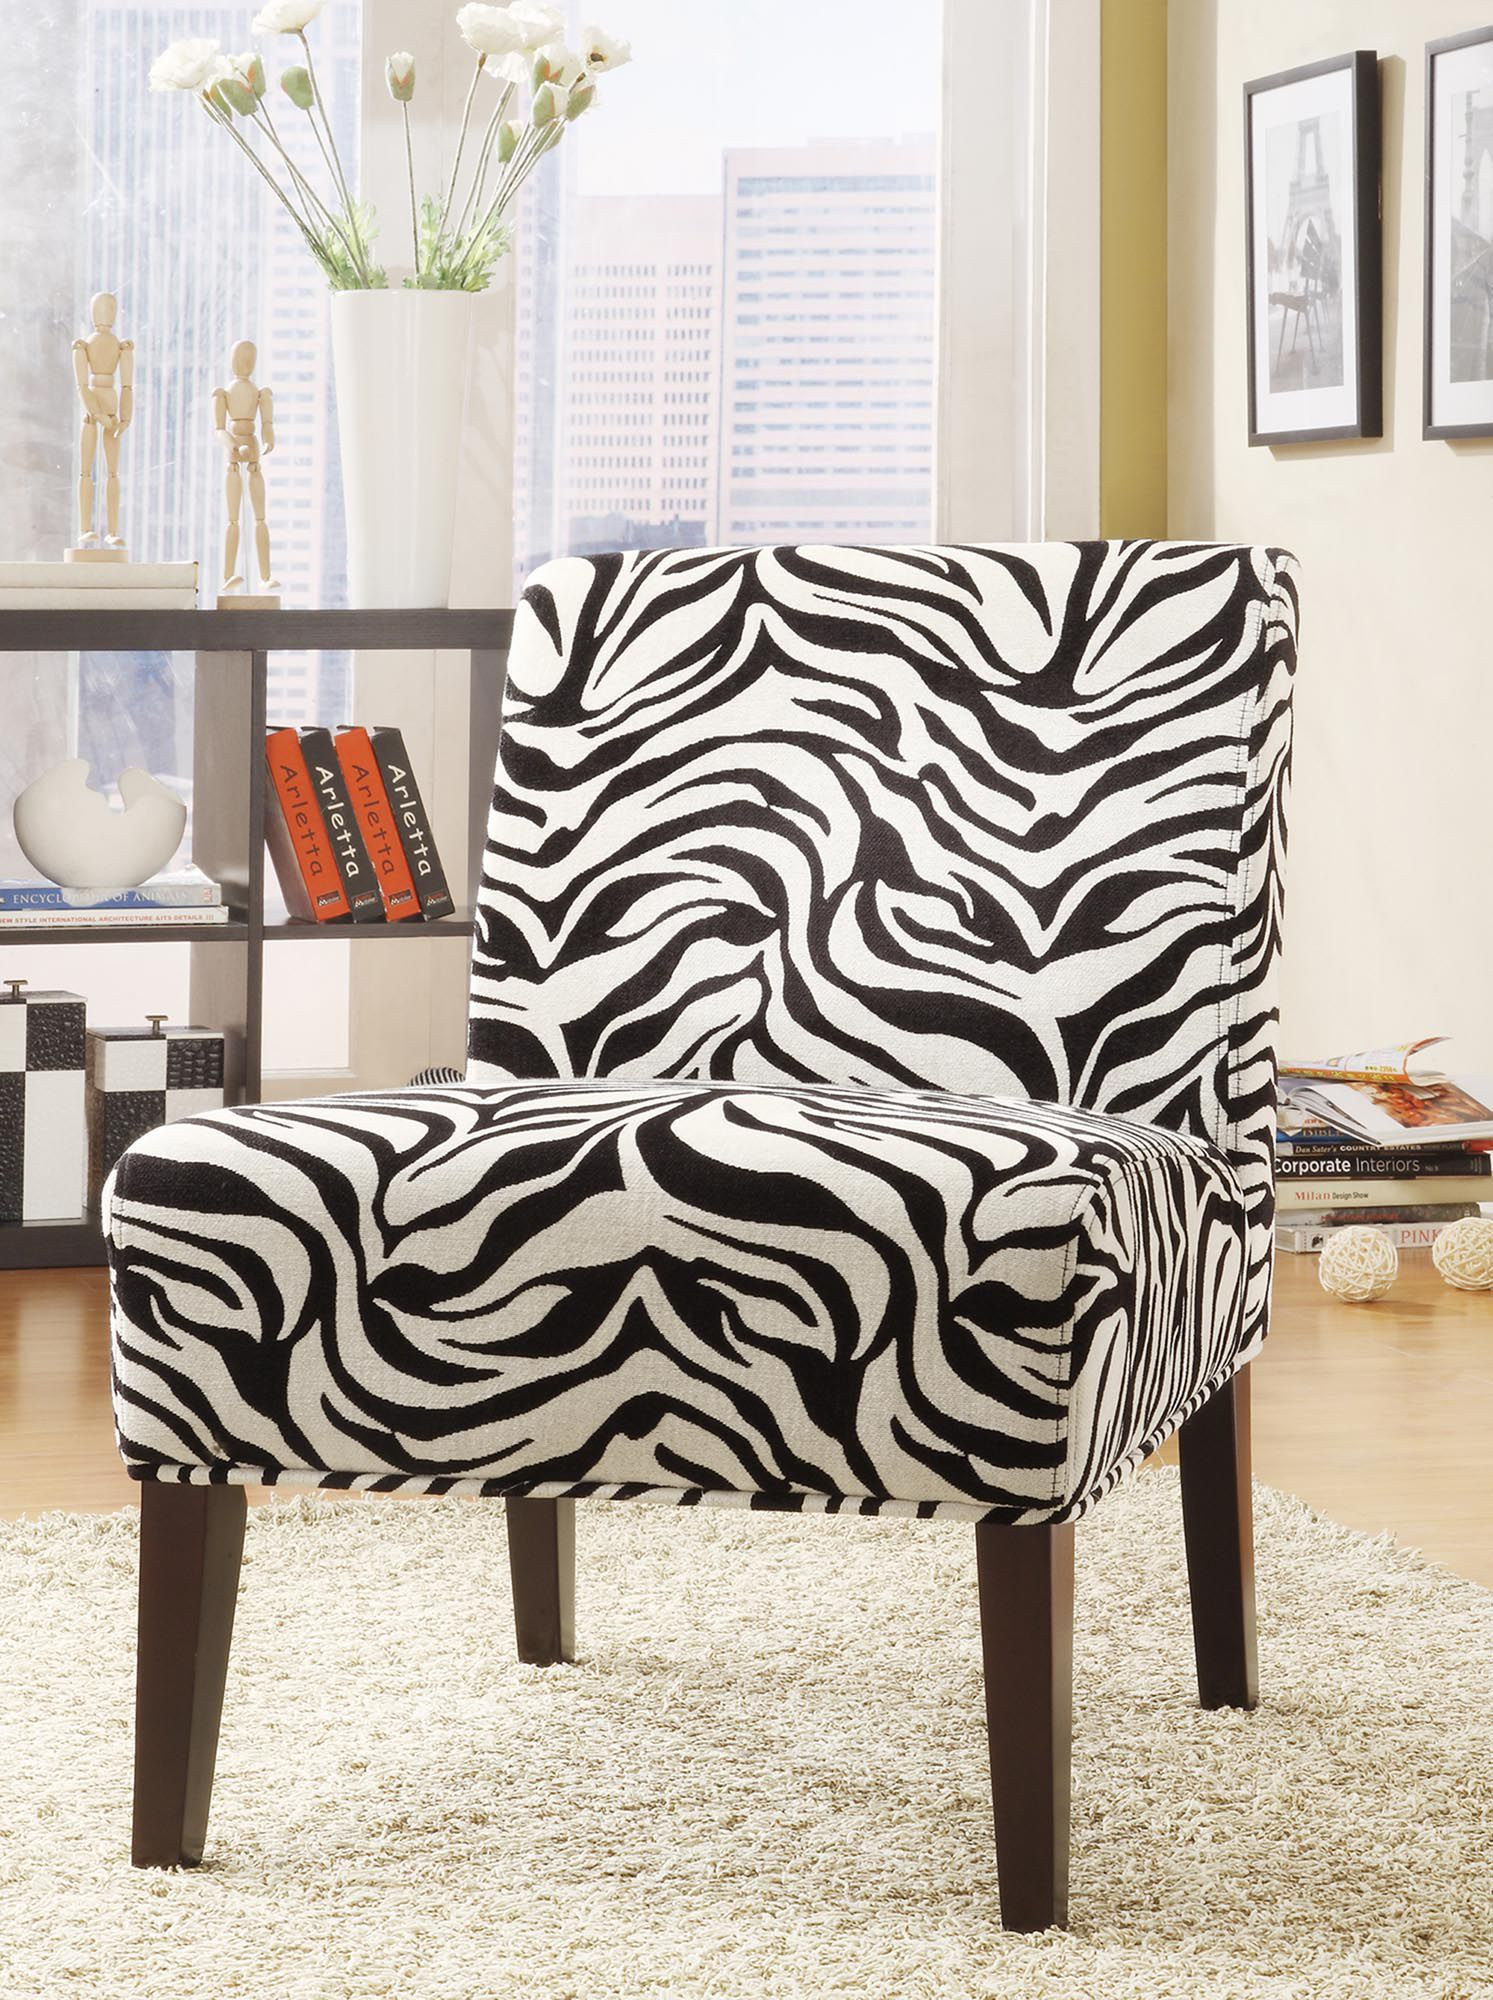 Zebra Accent Chair Oxford Creek Contemporary Accent Chair In Zebra Fabric